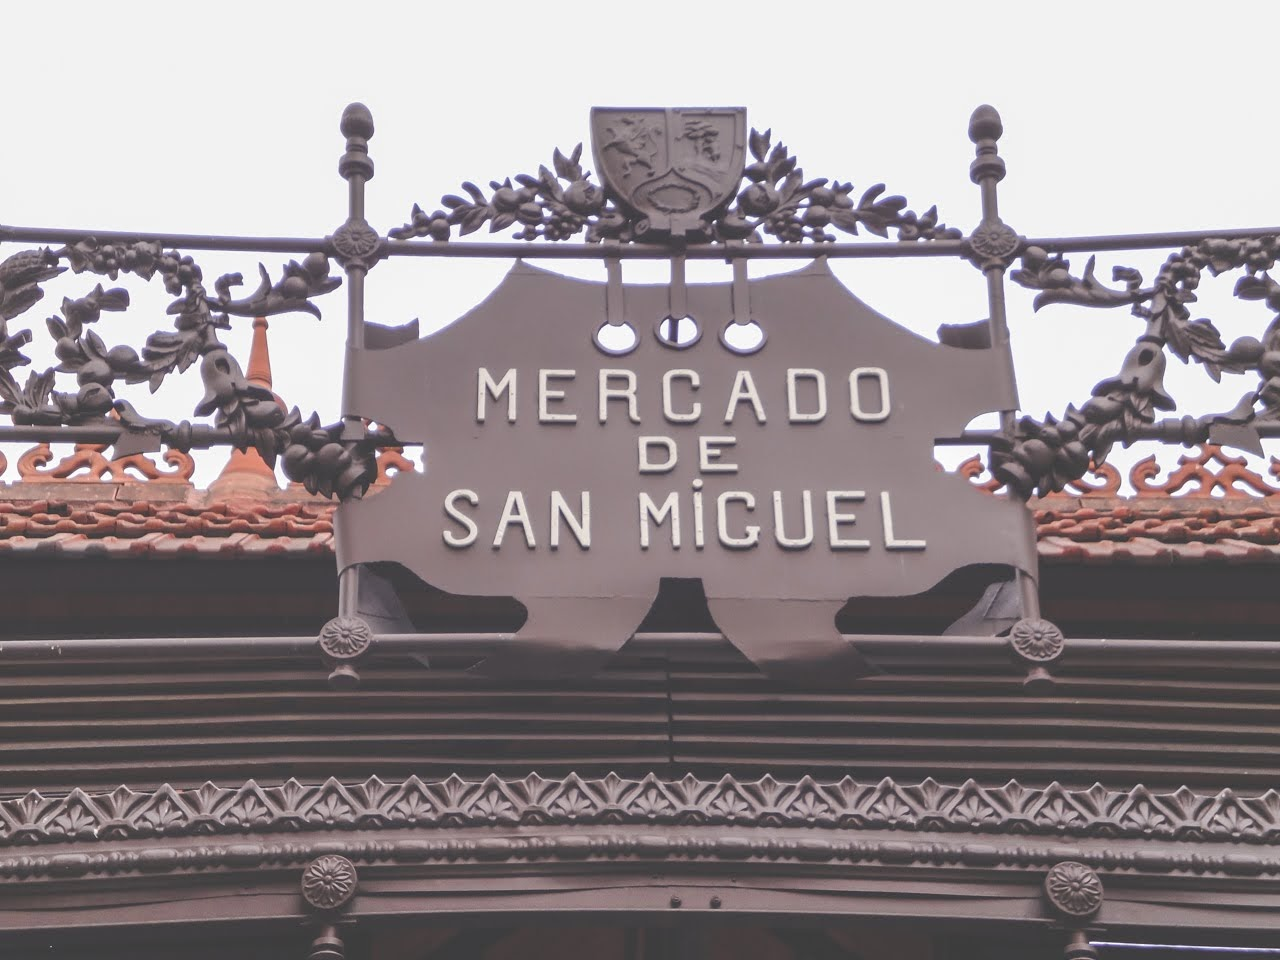 One of the outdoor signs that read El Mercado de San Miguel